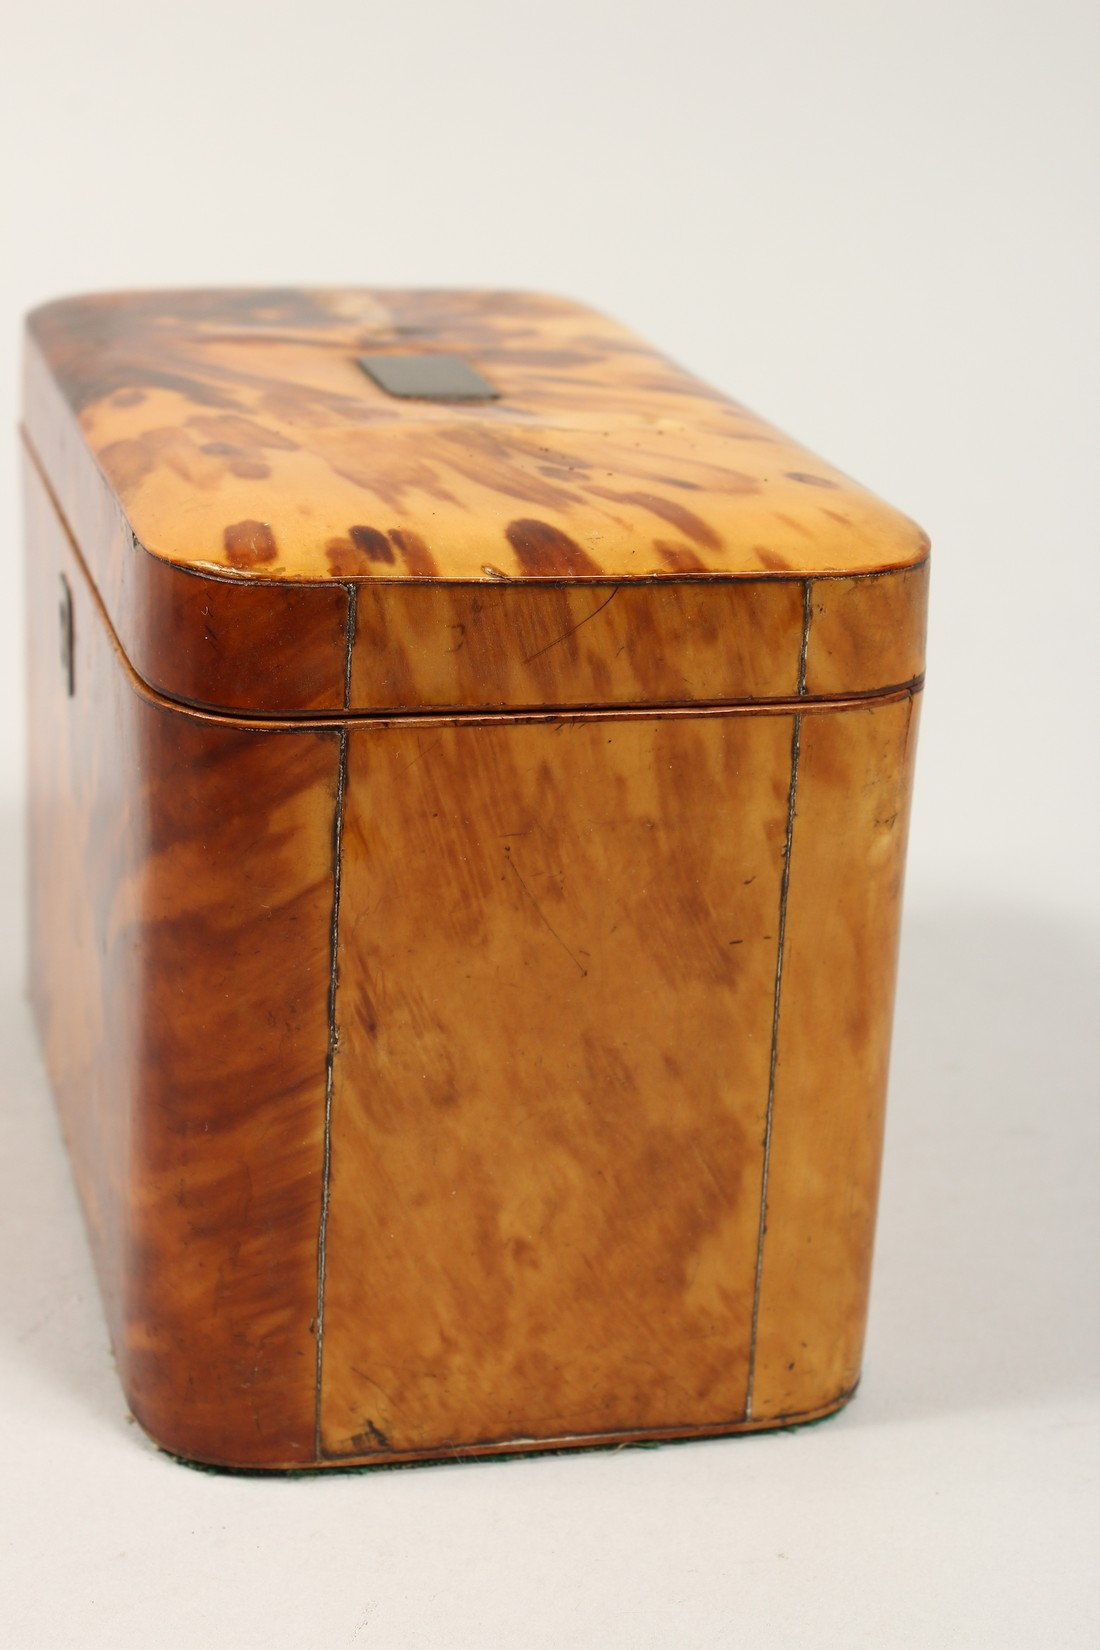 A GOOD REGENCY TORTOISESHELL TWO DIVISION TEA CADDY of rectangular form. 6.75ins high. - Image 2 of 7